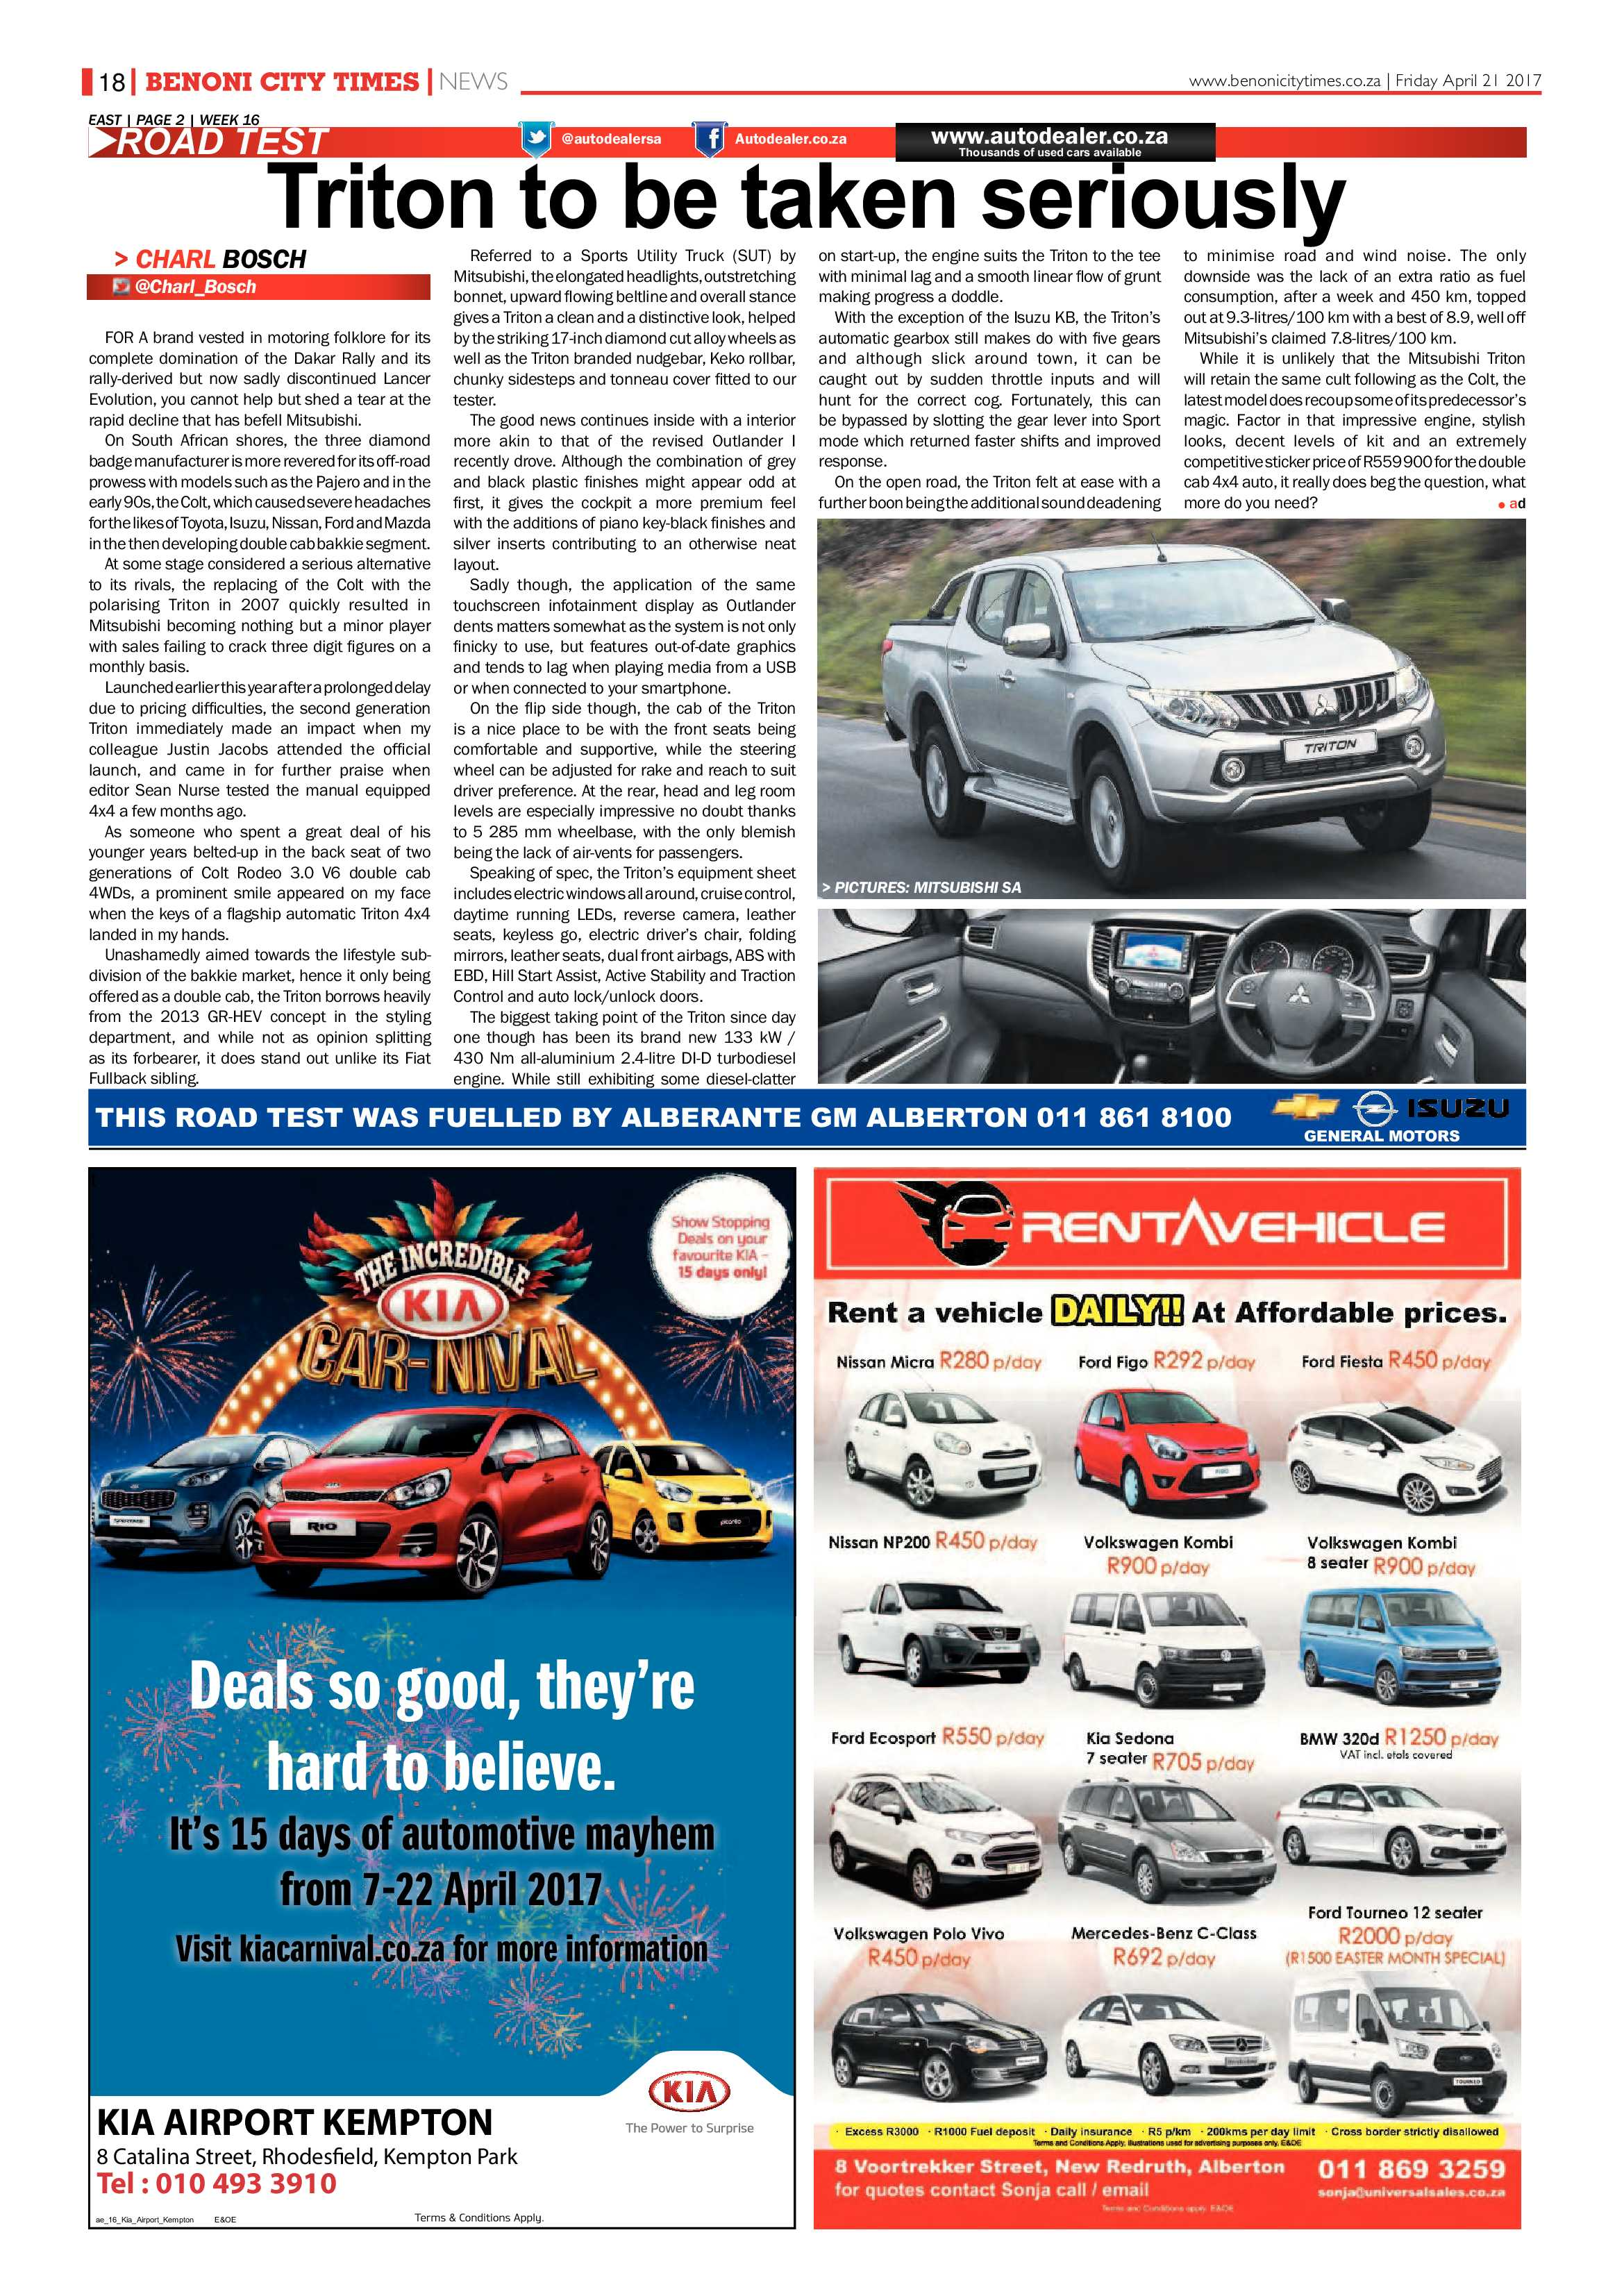 benoni-city-times-20-april-2017-epapers-page-18